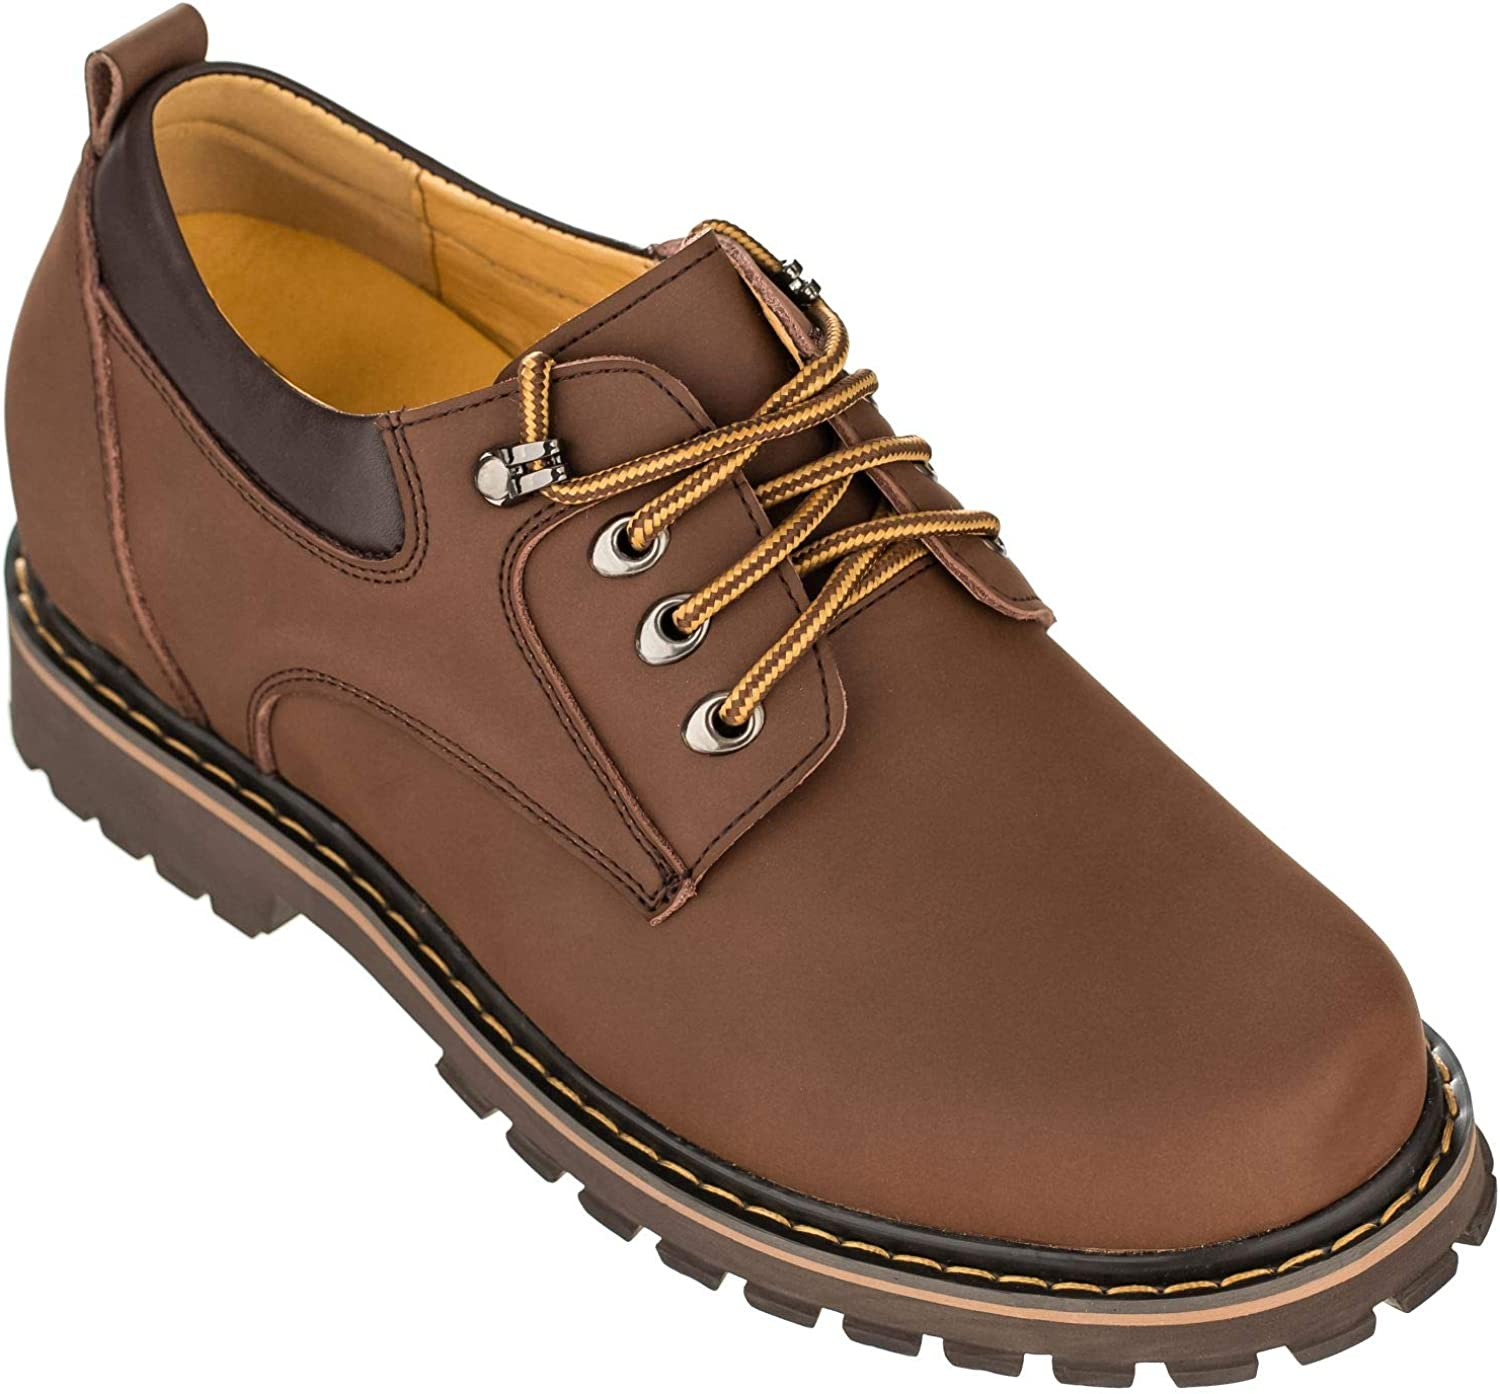 Toto Men's Invisible Height Increasing Elevator shoes - Brown Leather Lace-up Casual Loafers - 3.2 Inches Taller - F70272